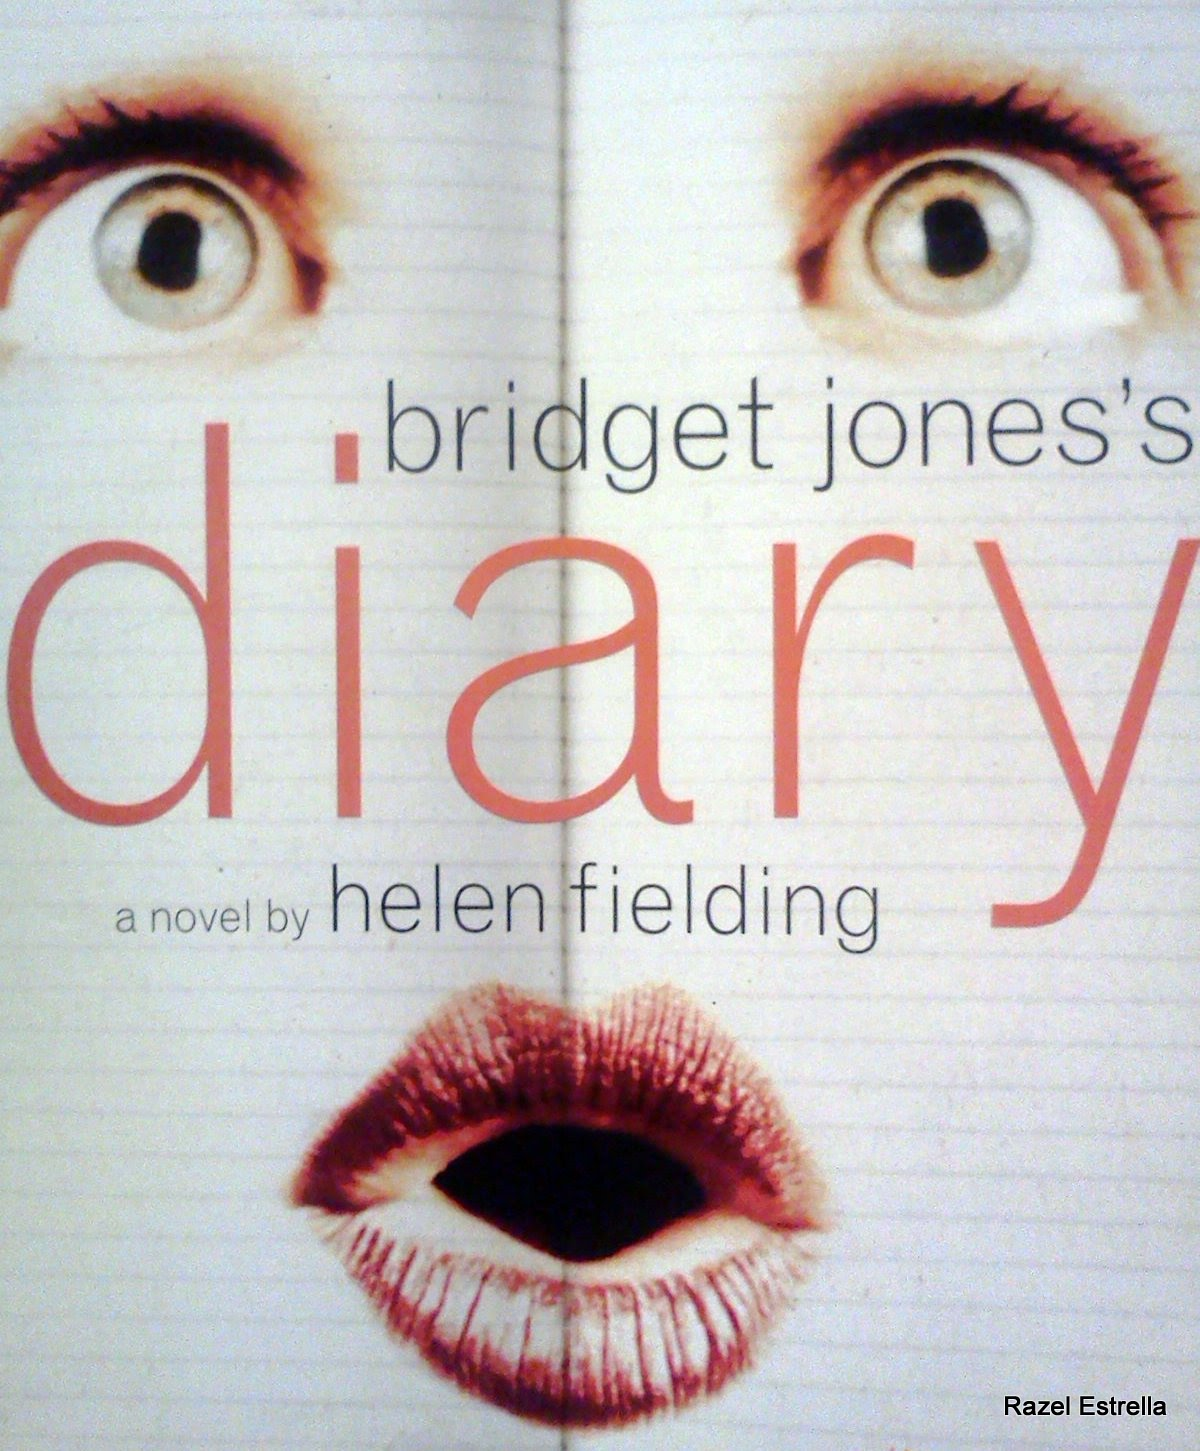 bridget jones s diary comparitive between book and film It's where your interests connect you with your people log in sign up bridget jones diary.